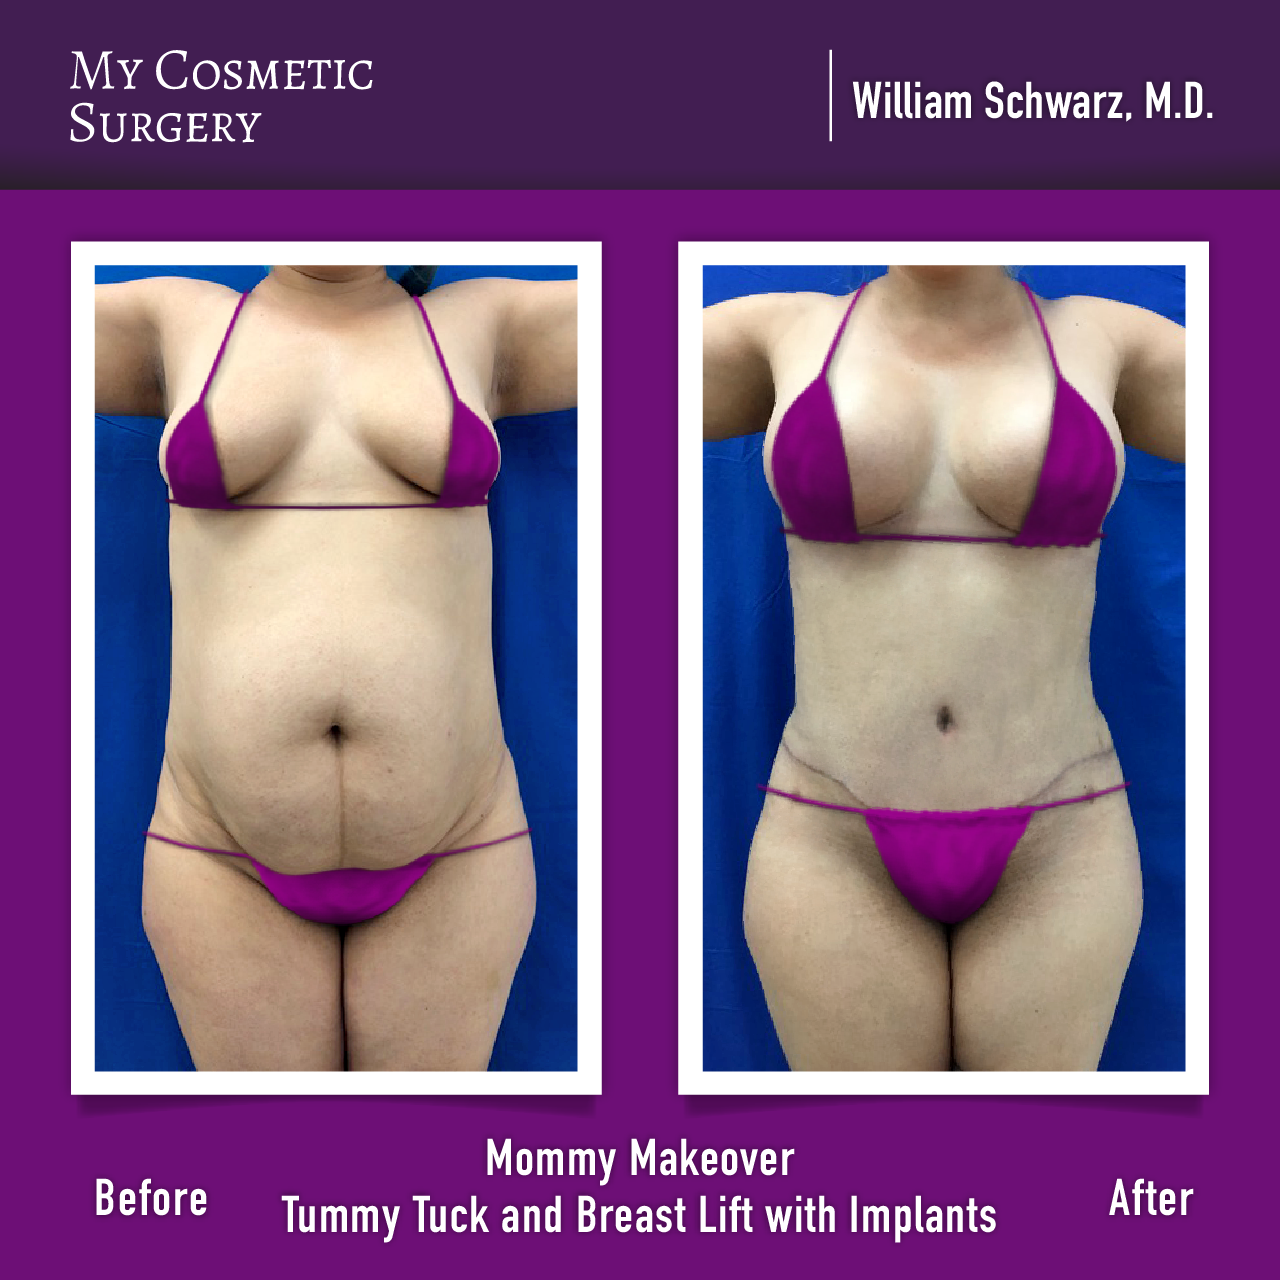 Before And After A Mommy Makeover By William Schwarz M D At My Cosmetic Surgery Miami Cosmetic Surgery Mommy Makeover Surgery Plastic Surgery